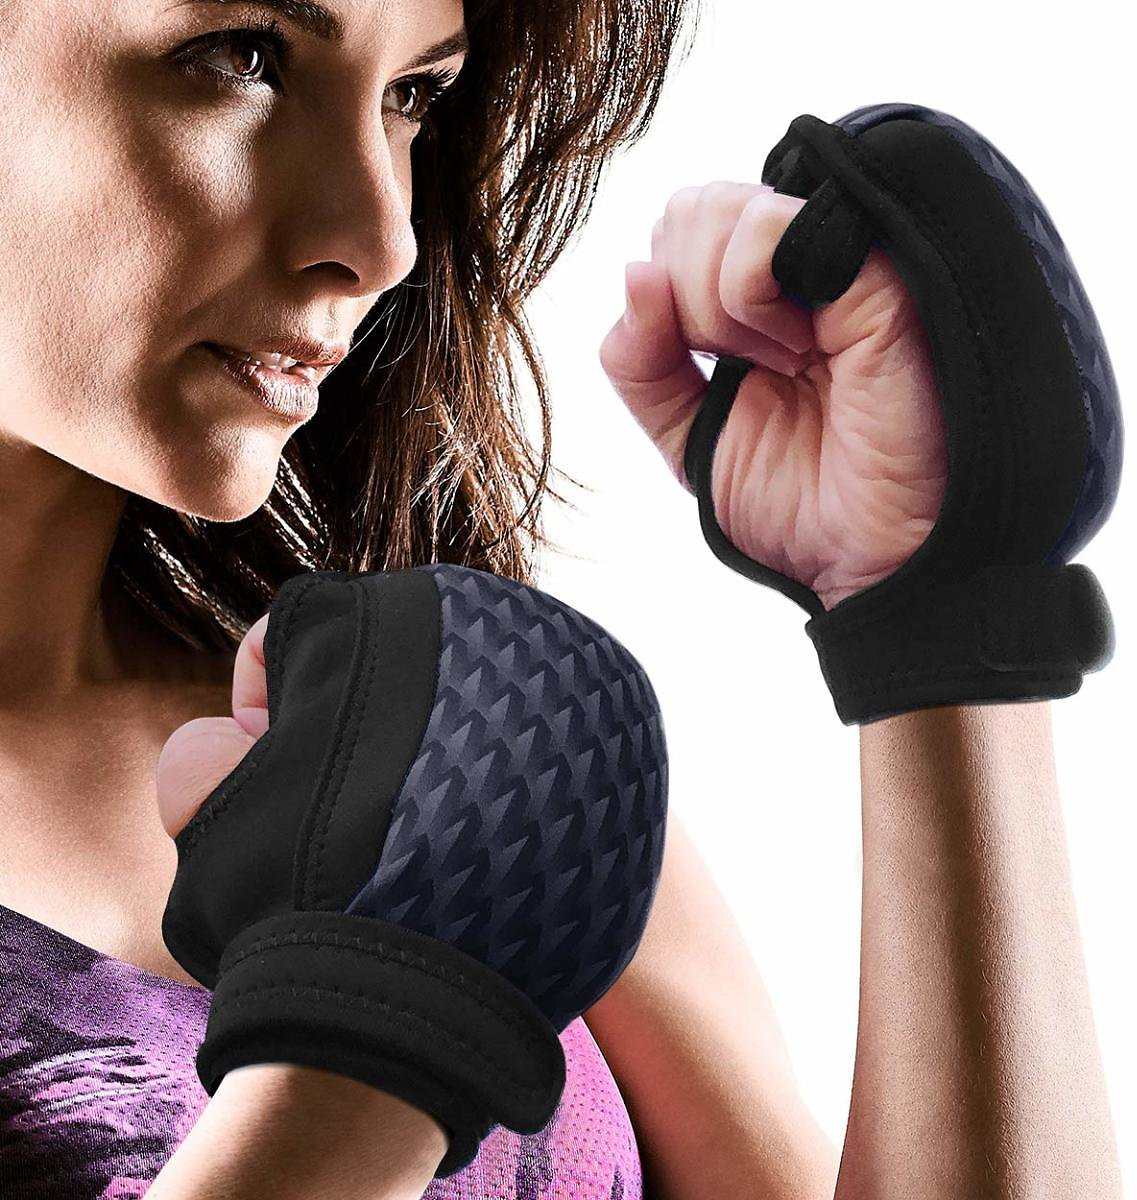 Empower Weighted Gloves for Women, Kickboxing, MMA, 4 Lb Set (2 Pounds Each Glove), Geo Black : Industrial & Scientific